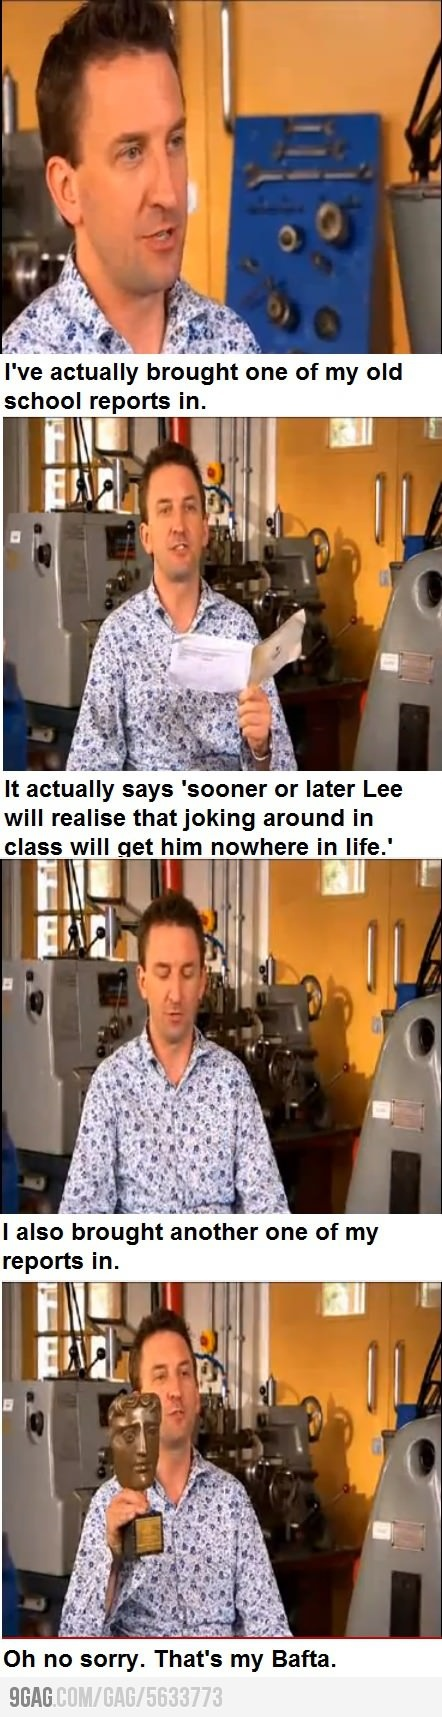 I'm not huge on Lee Mack really but this burn must've left such a scar